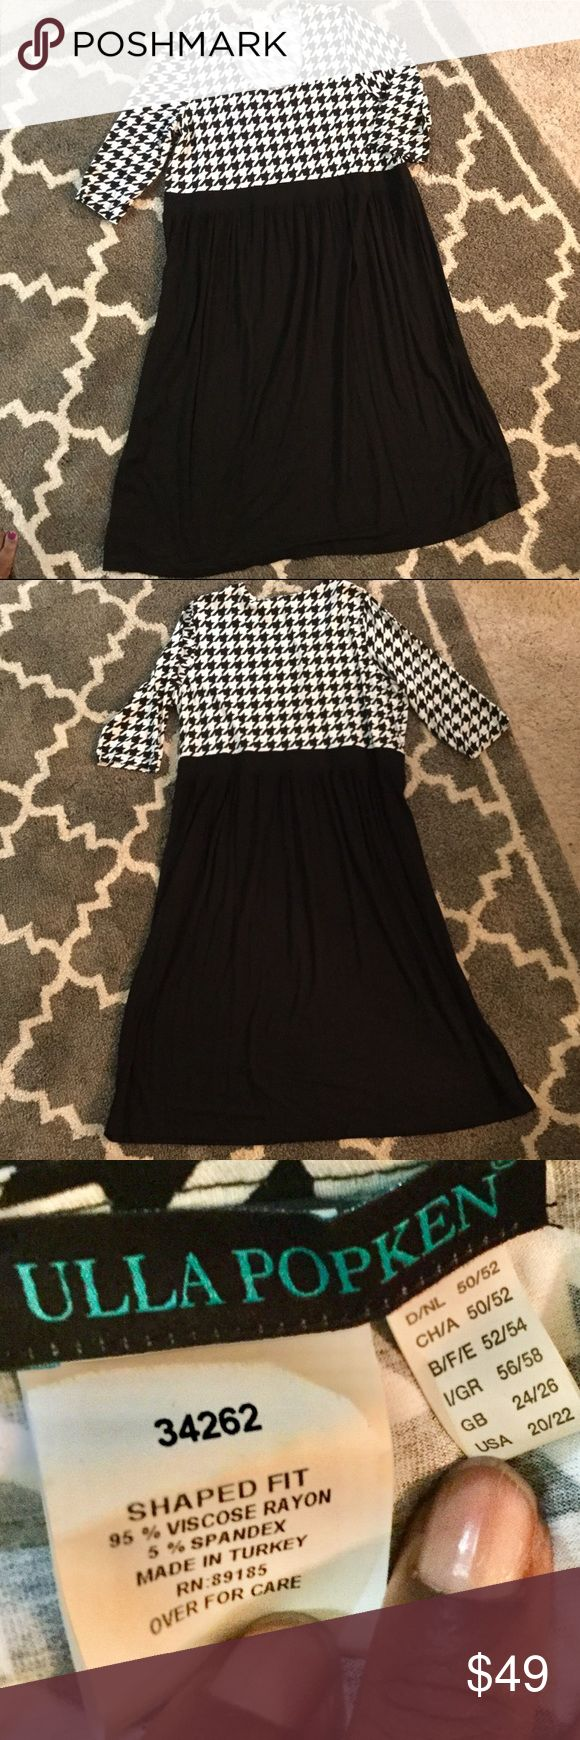 """Houndstooth-Bodice Dress Upscale houndstooth dress with stretch.  Excellent used condition and will definitely become a fast fave.   Size 20/22 as shown on tag in photo.  Measurements: 49.5"""" from neck to hem 48"""" bust unstretched  16"""" neck to waist 18"""" sleeve length  16"""" sleeve width  35"""" shoulder Ulla Popken Dresses"""